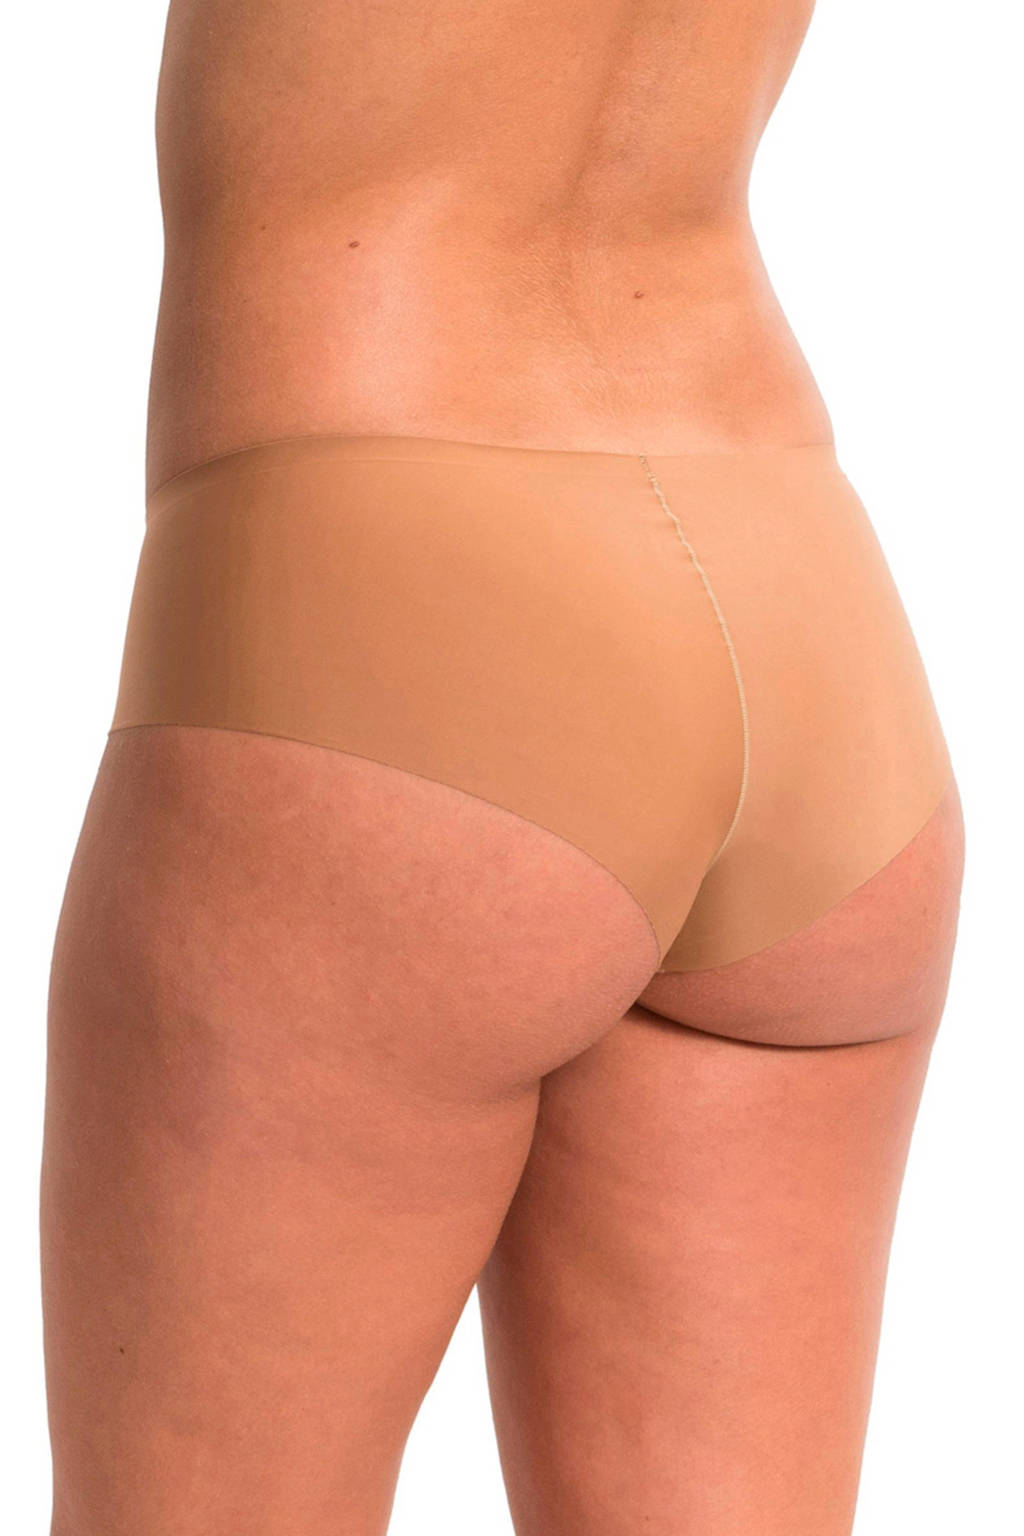 MAGIC Bodyfashion naadloze hipster Dream Invisibles (set van 2) donkerbeige, Donkerbeige